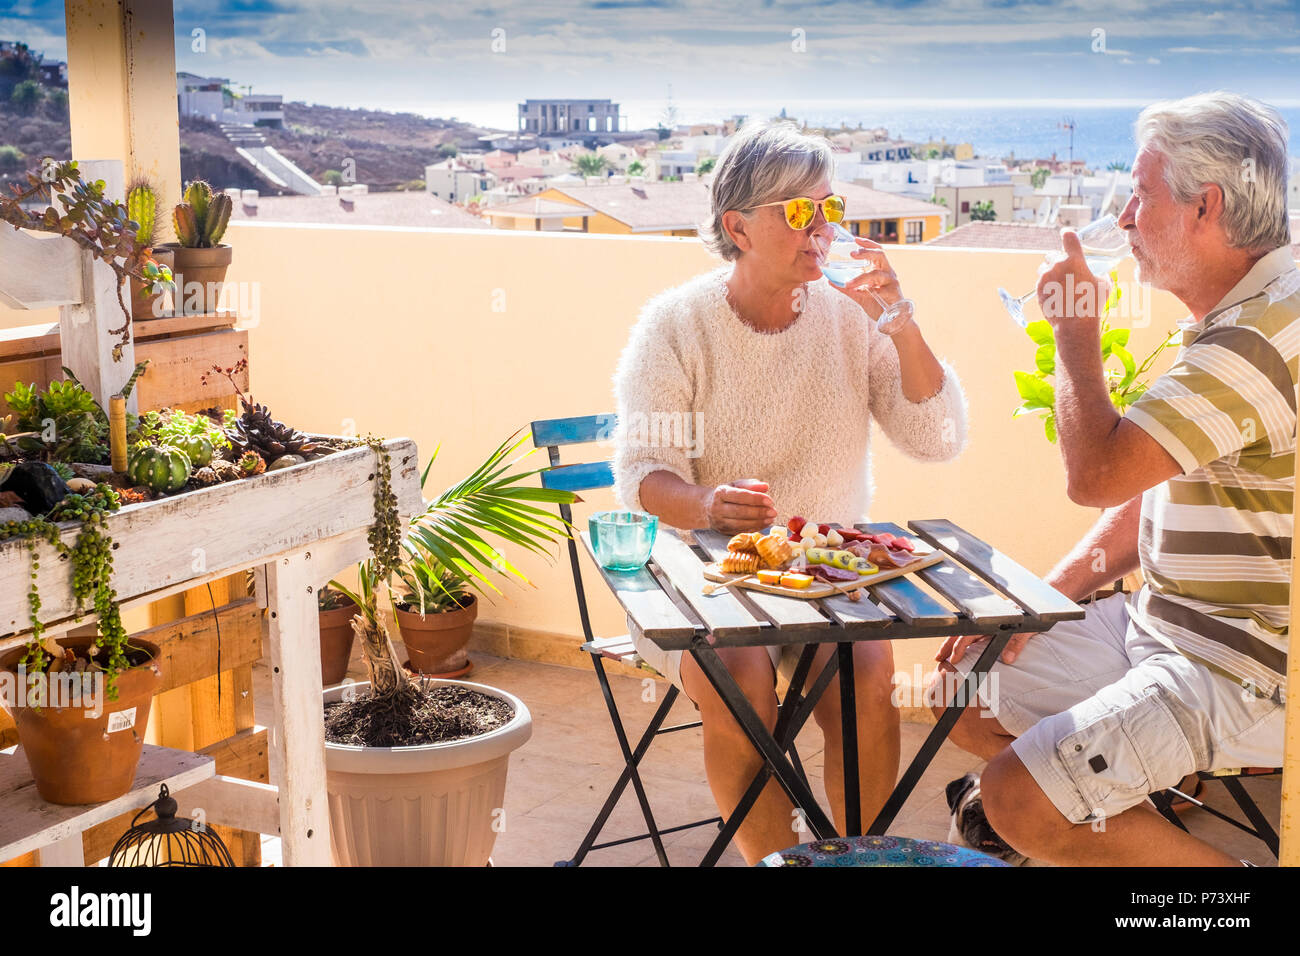 caucasian senior adult couple eat and enjoy leisure outdoor together eating and drinking a breakfast in a sunny morning on the rooftop with ocean view - Stock Image